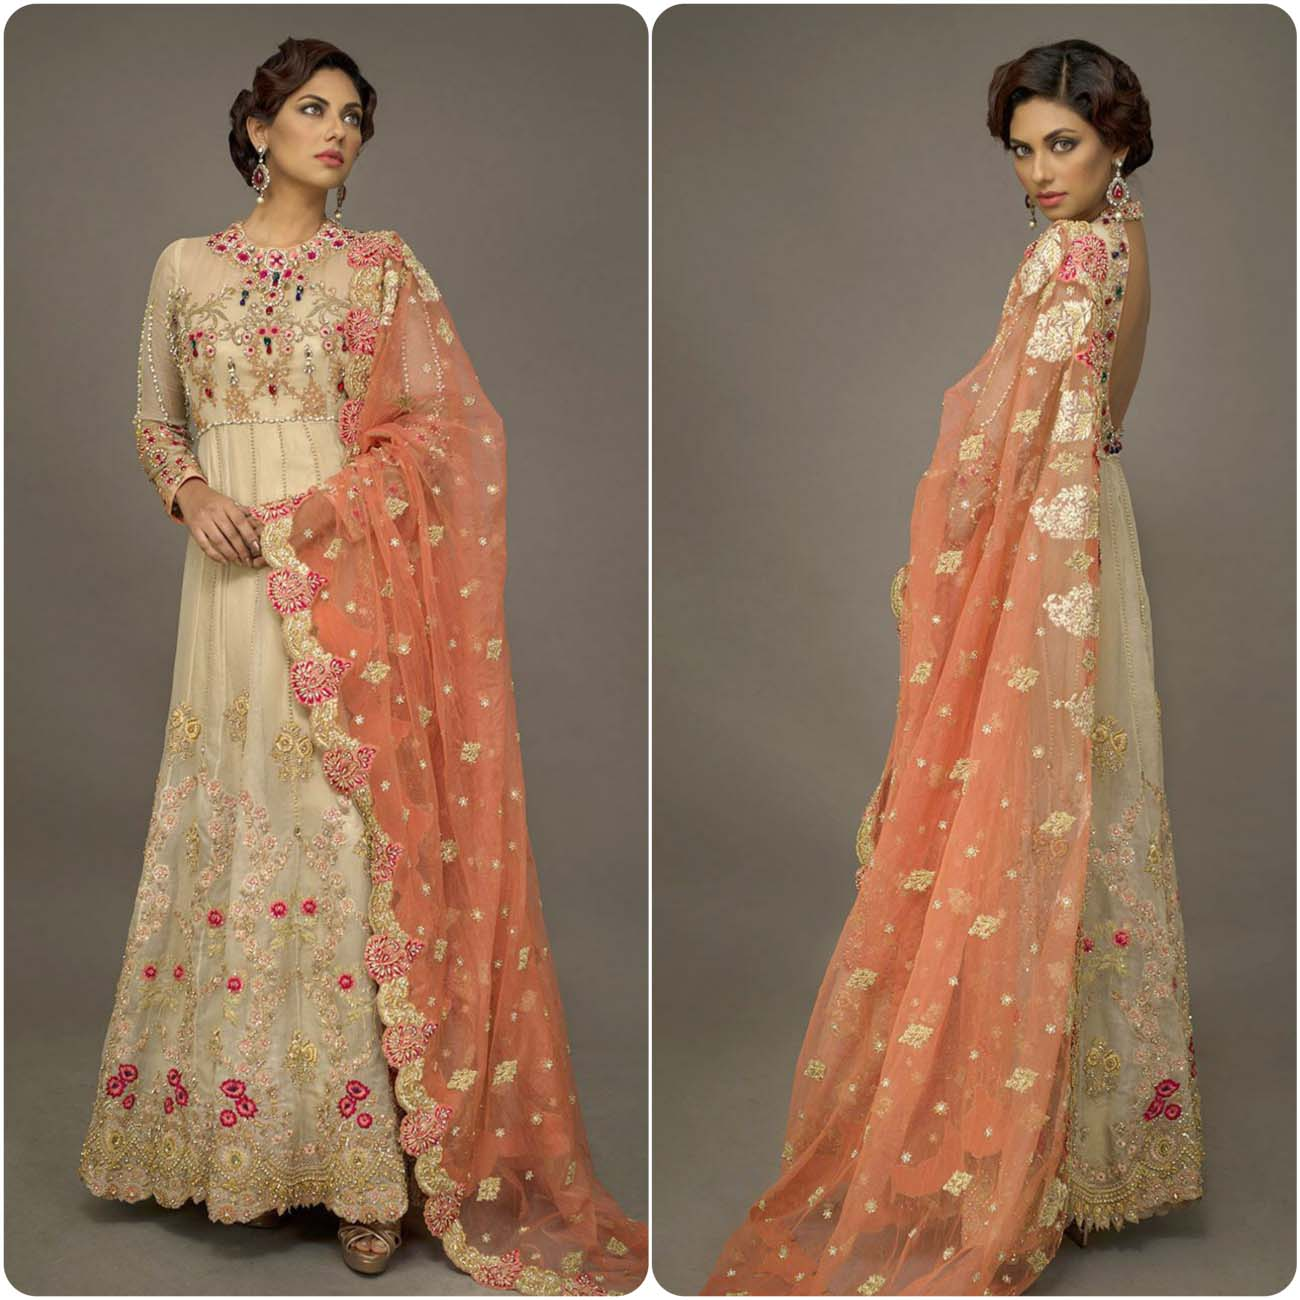 Deepak perwani Wedding Dresses Collection Fo Women 2016-2017...styloplanet (7)